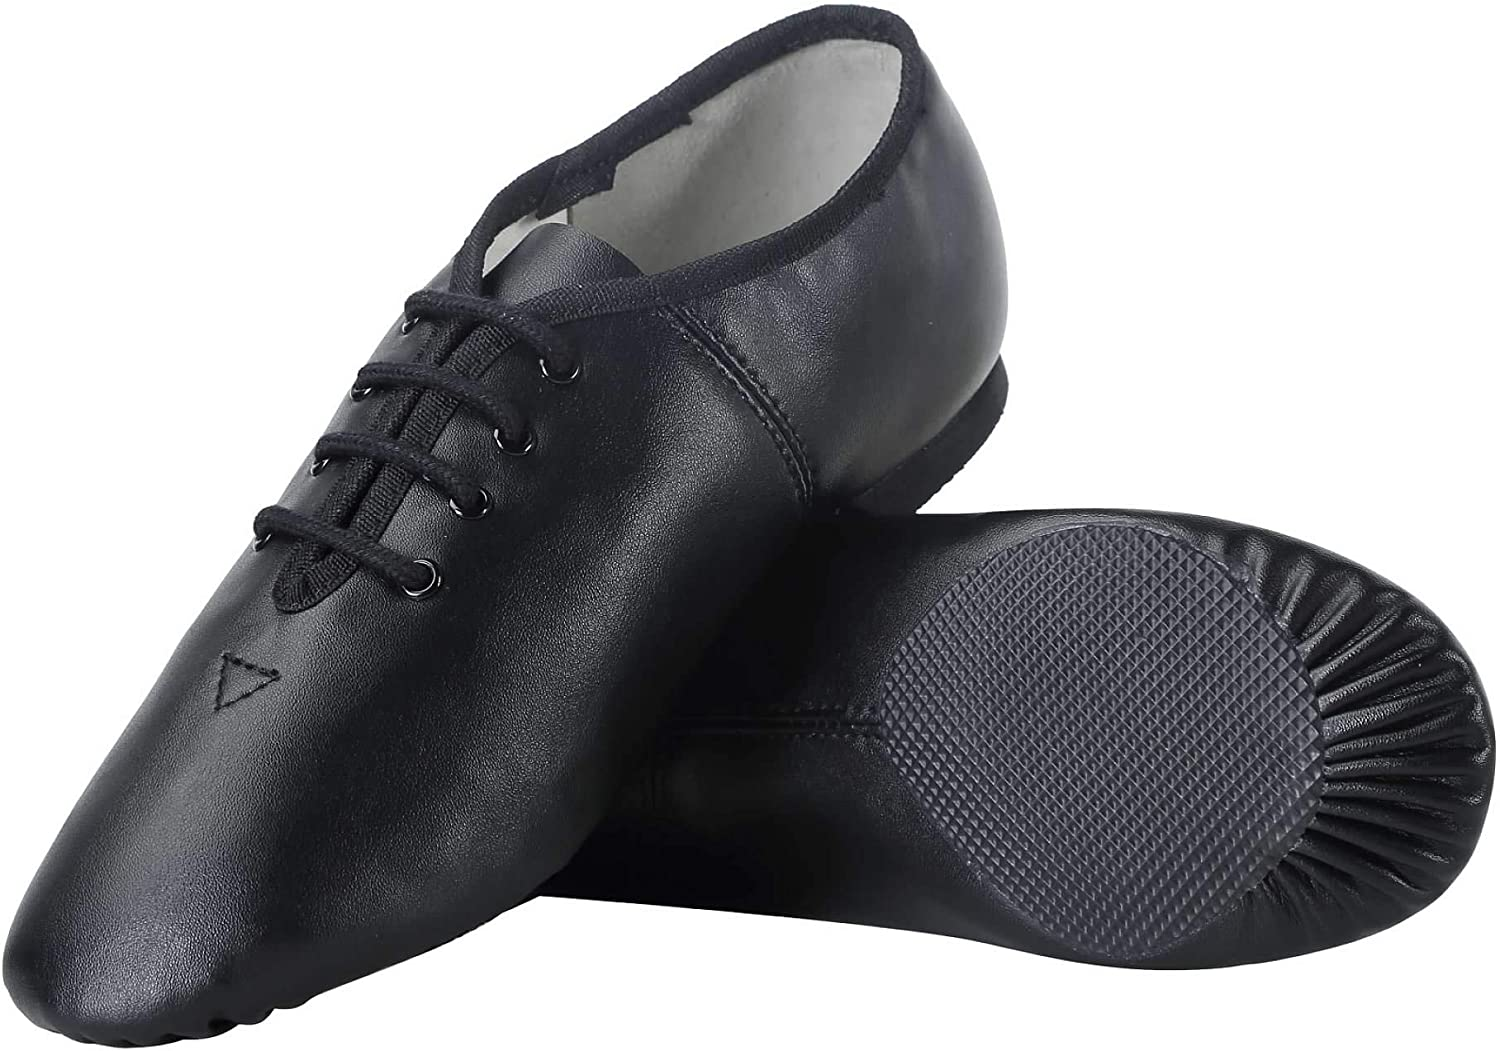 Dynadans Unisex PU Leather Upper Lace Up Jazz Shoe for Women and Men's Dance Shoes